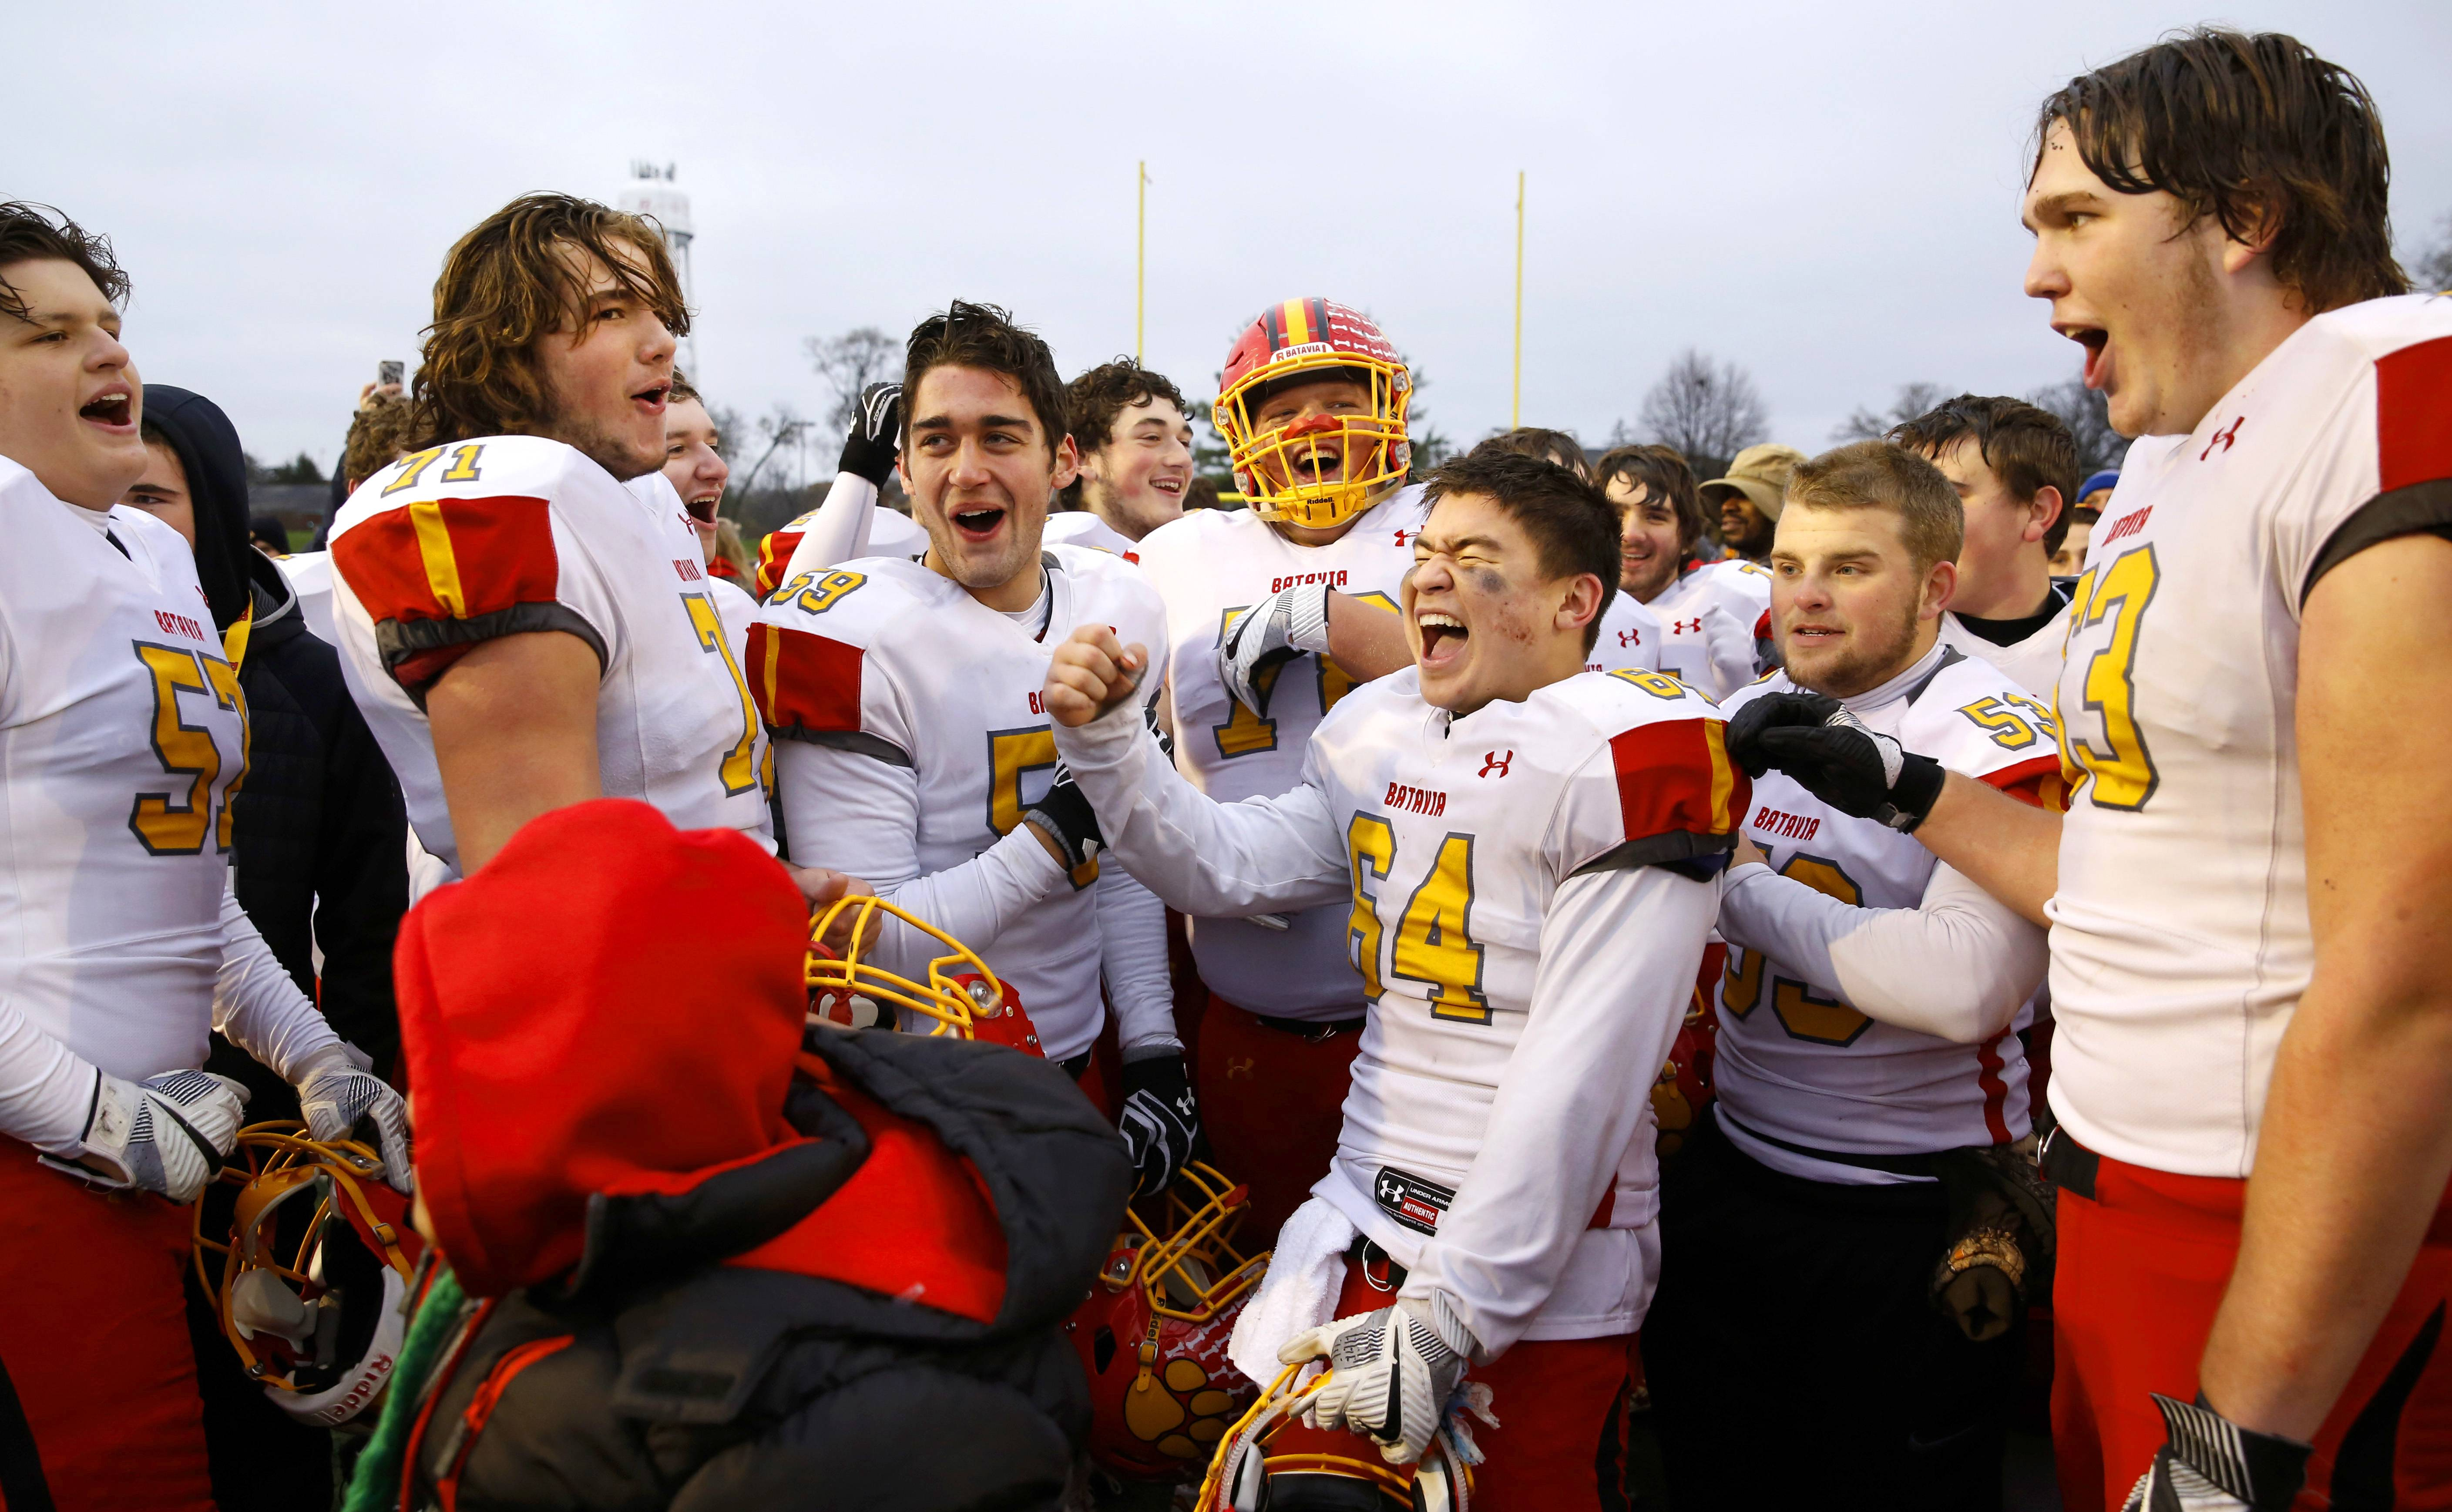 Batavia players, led by Benjamin Stoffels (64), celebrate after a 23-13 win over Benet Academy in the Class 7A football semifinals at Benedictine University in Lisle on Saturday.